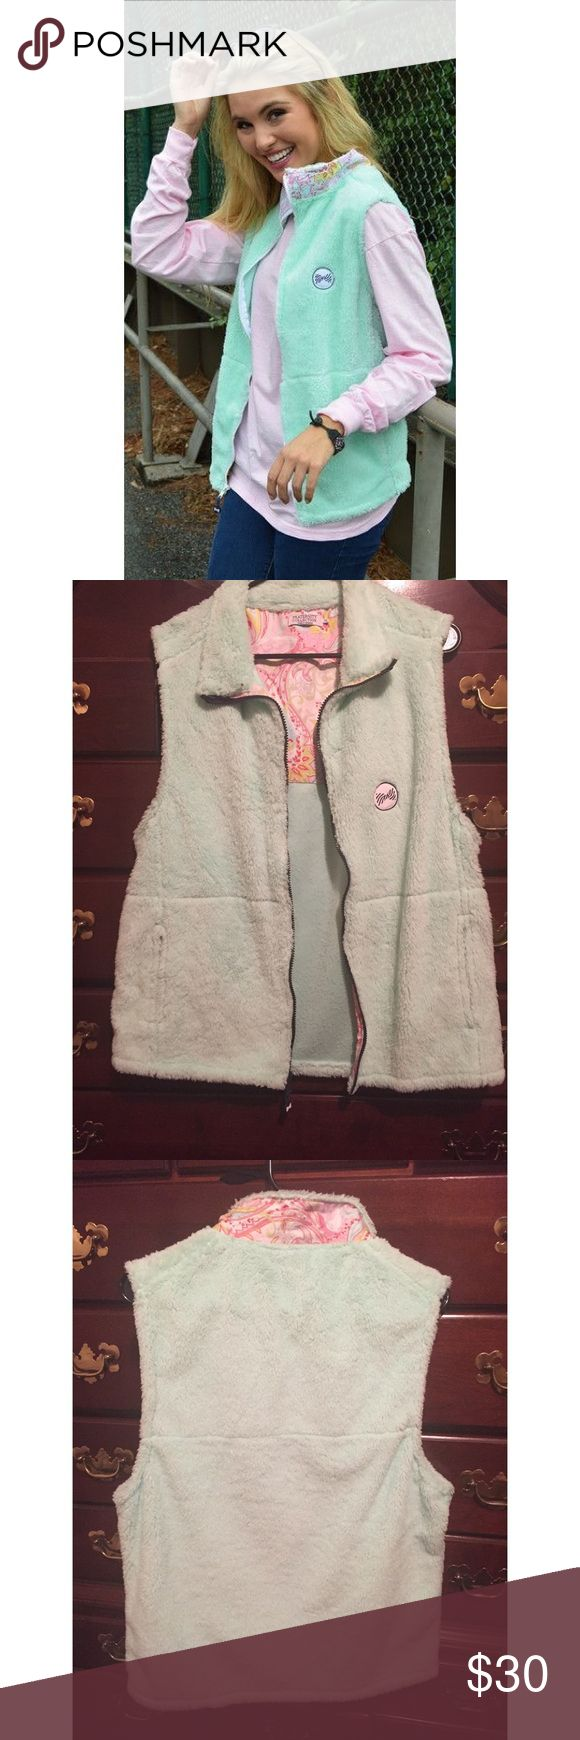 Fraternity Collection Fleece Sherpa Vest Super cute mint sherpa vest! Bought and never worn! In excellent condition. Zips up and has pockets. Fraternity Collection Jackets & Coats Vests